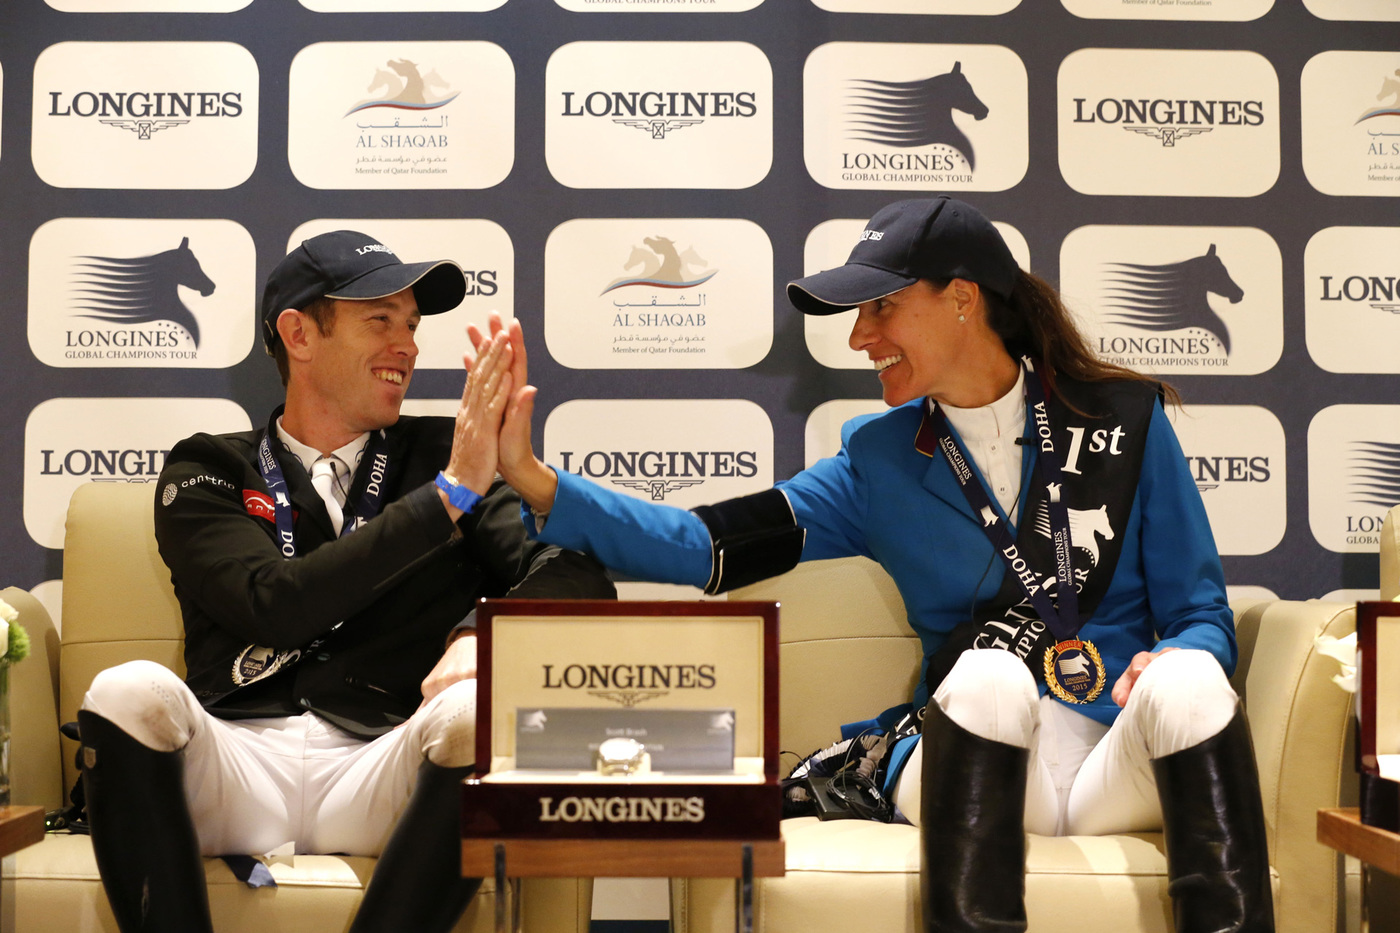 Longines Show Jumping Event: Doha hosts the finale of the 2015 Longines Global Champions Tour 5